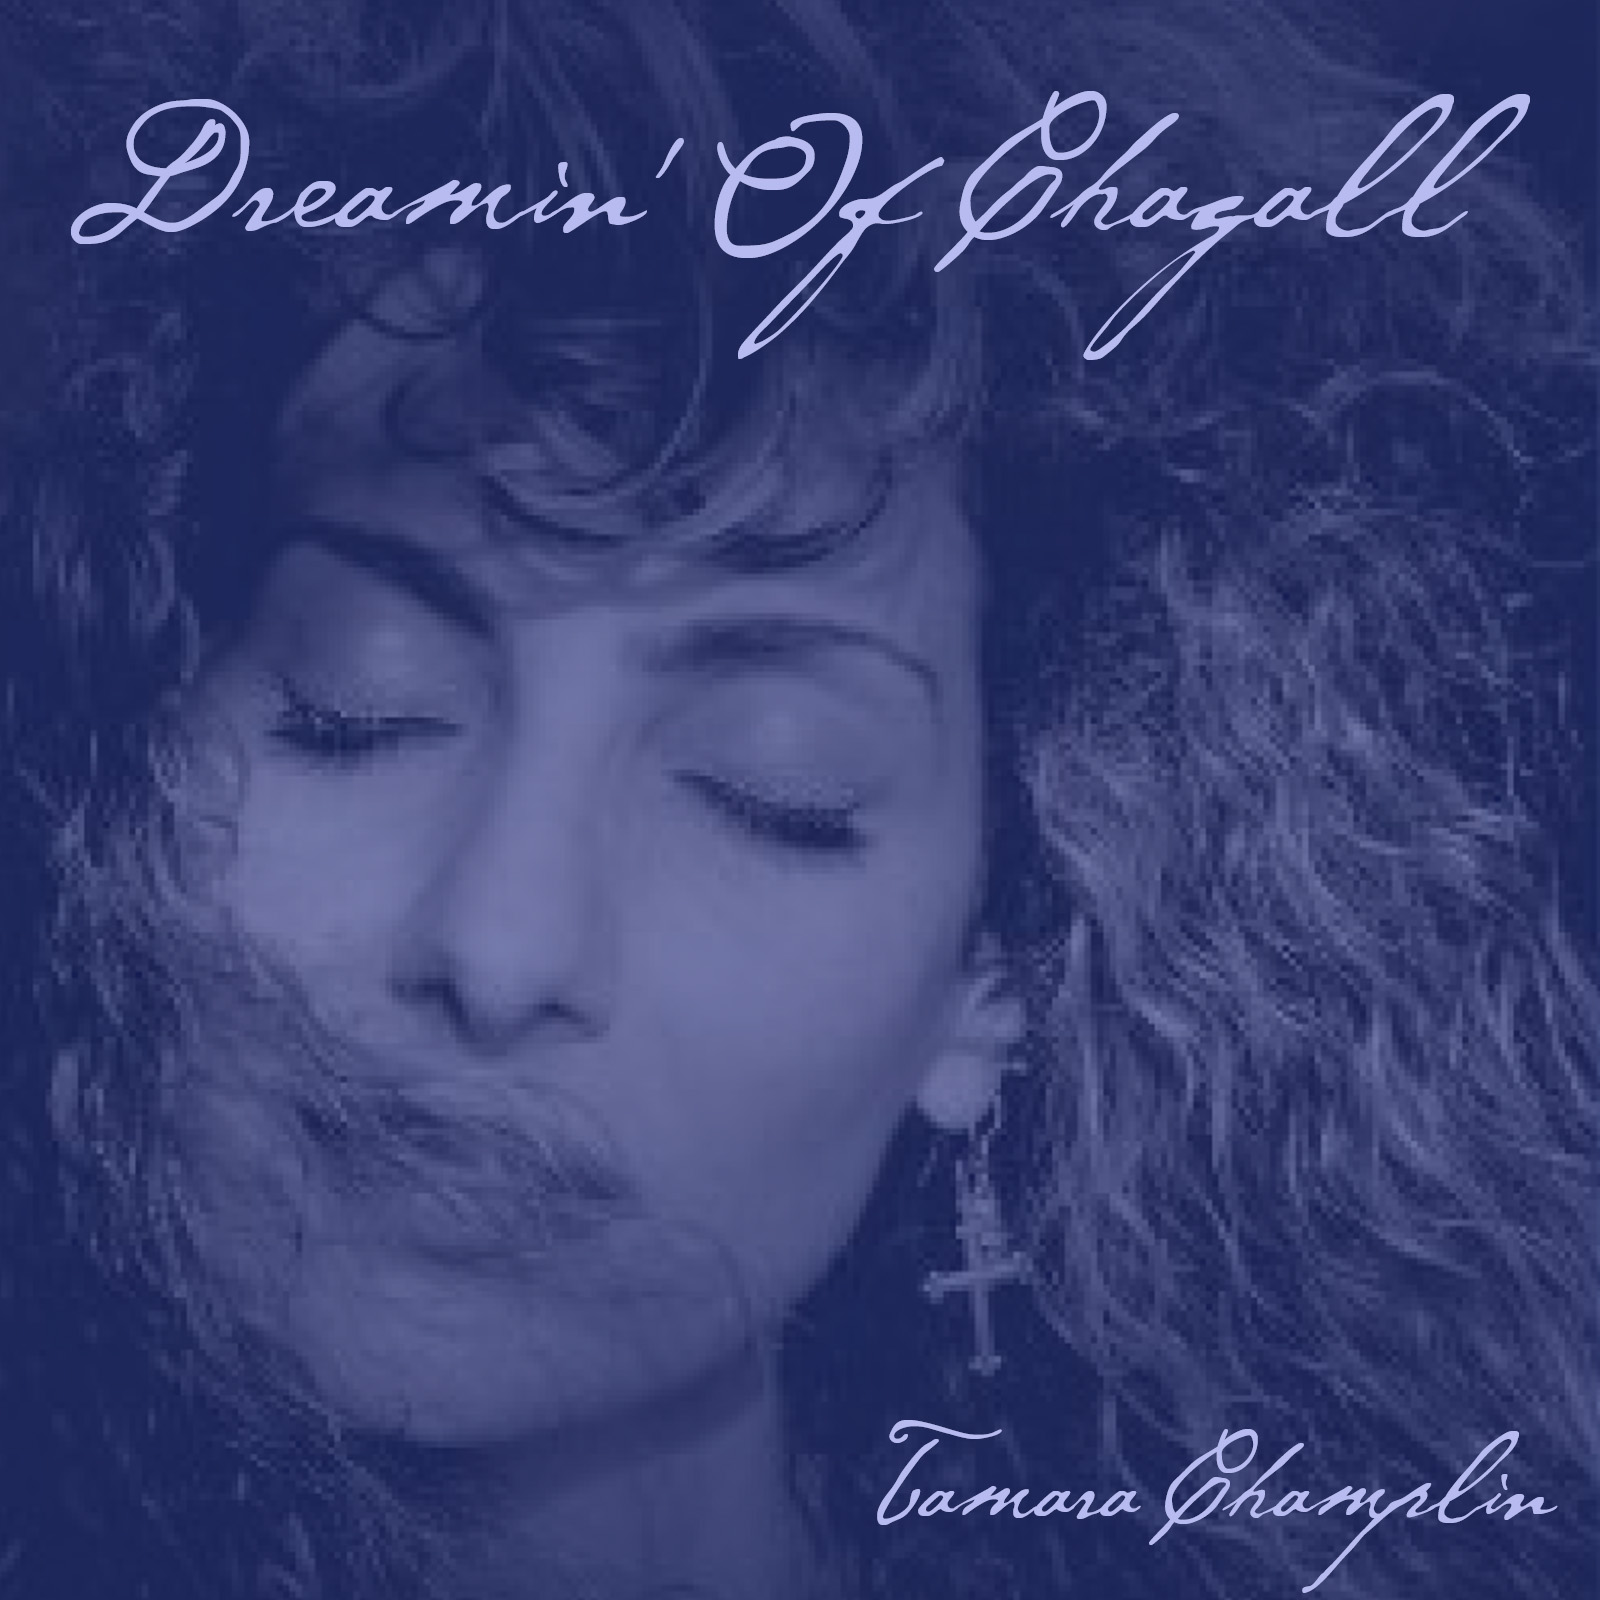 Dreamin' of Chagall - Tamara Champlin